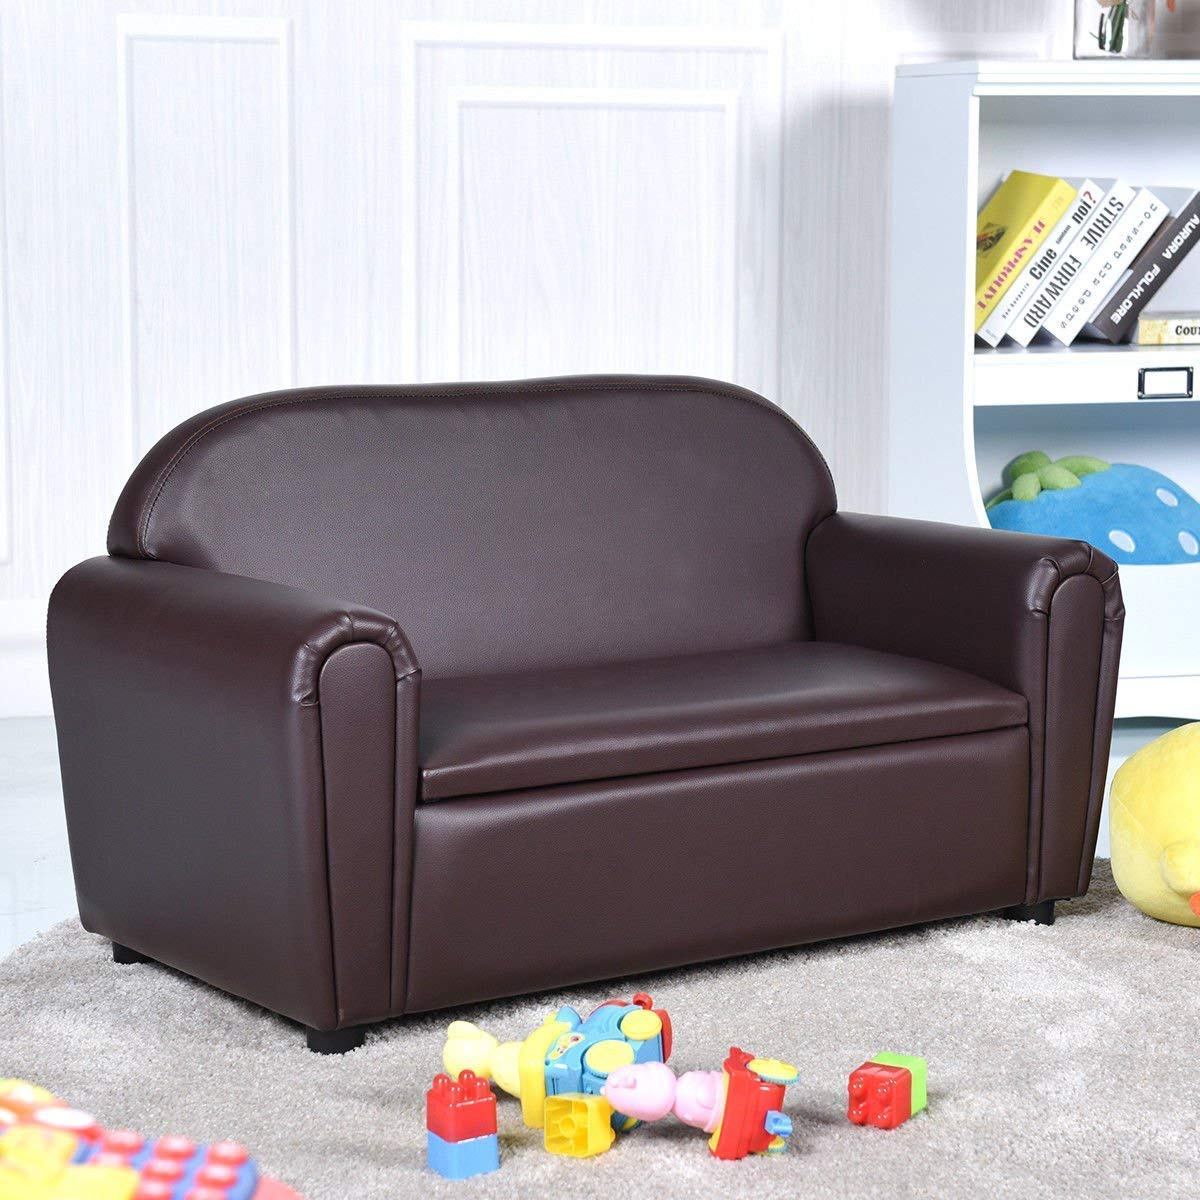 Kids Sofa, Upholstered Couch, Sturdy Wood Construction, Armrest Chair for Preschool Children, Couch with Storage Box (Double Seat)